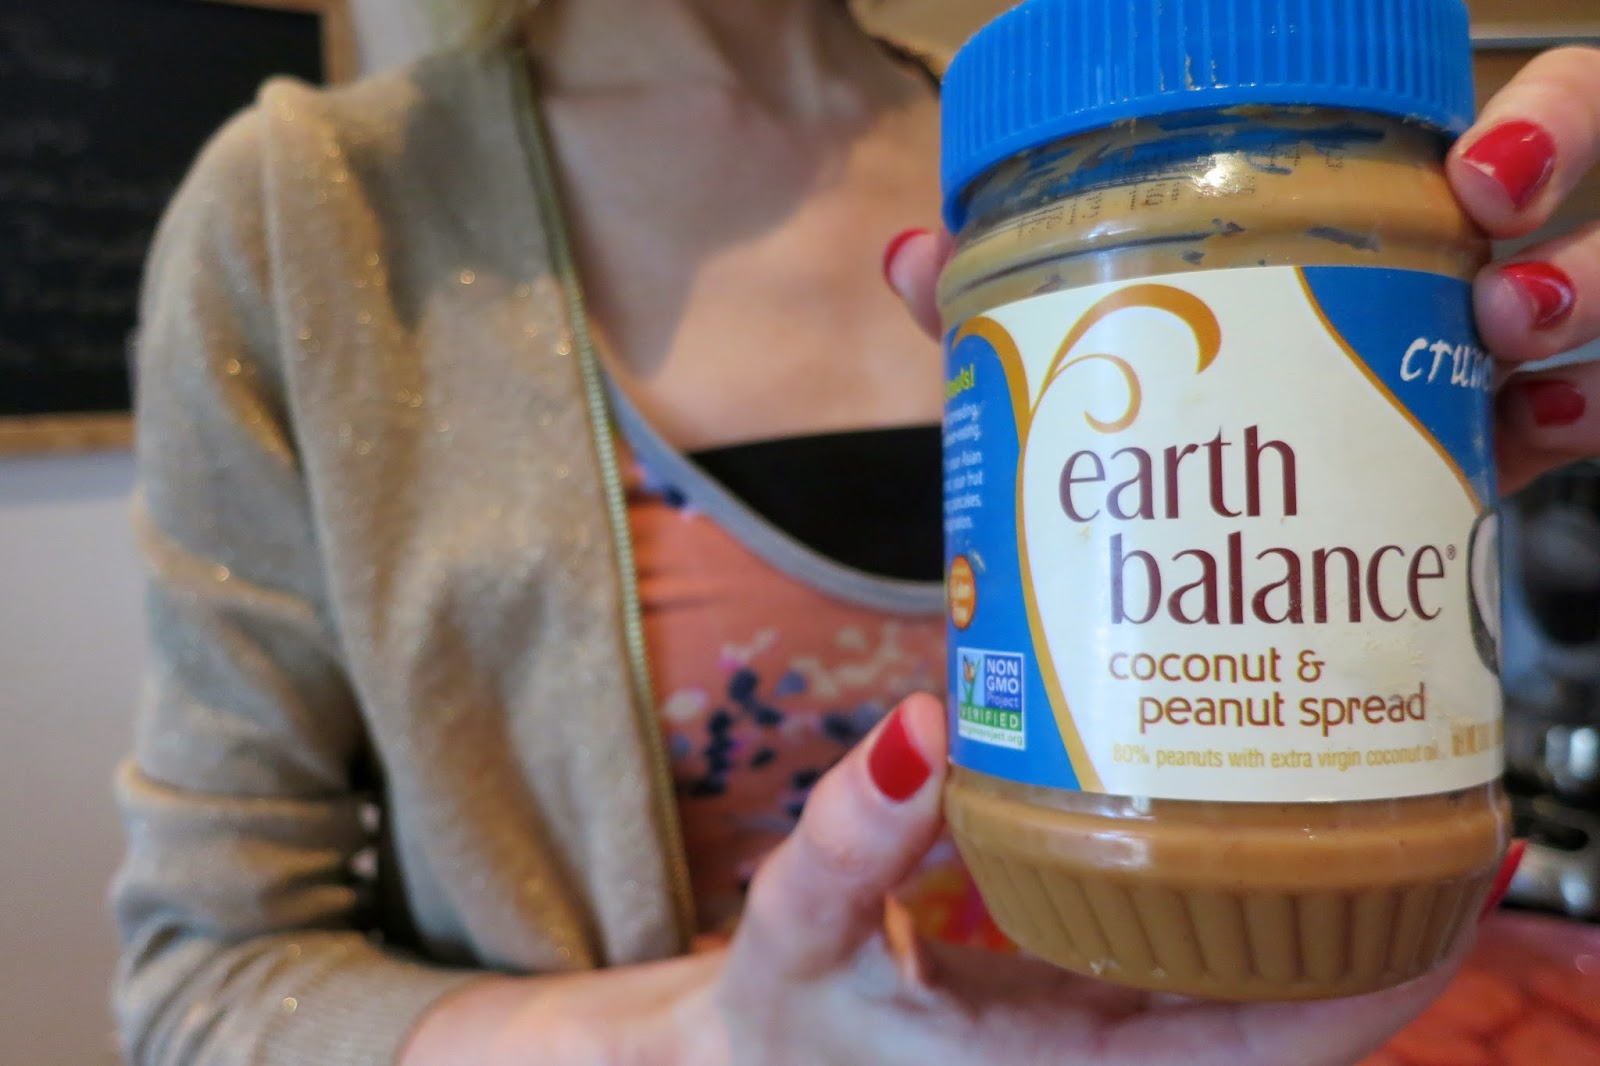 coconut & peanut spread, earth balance, peanut butter